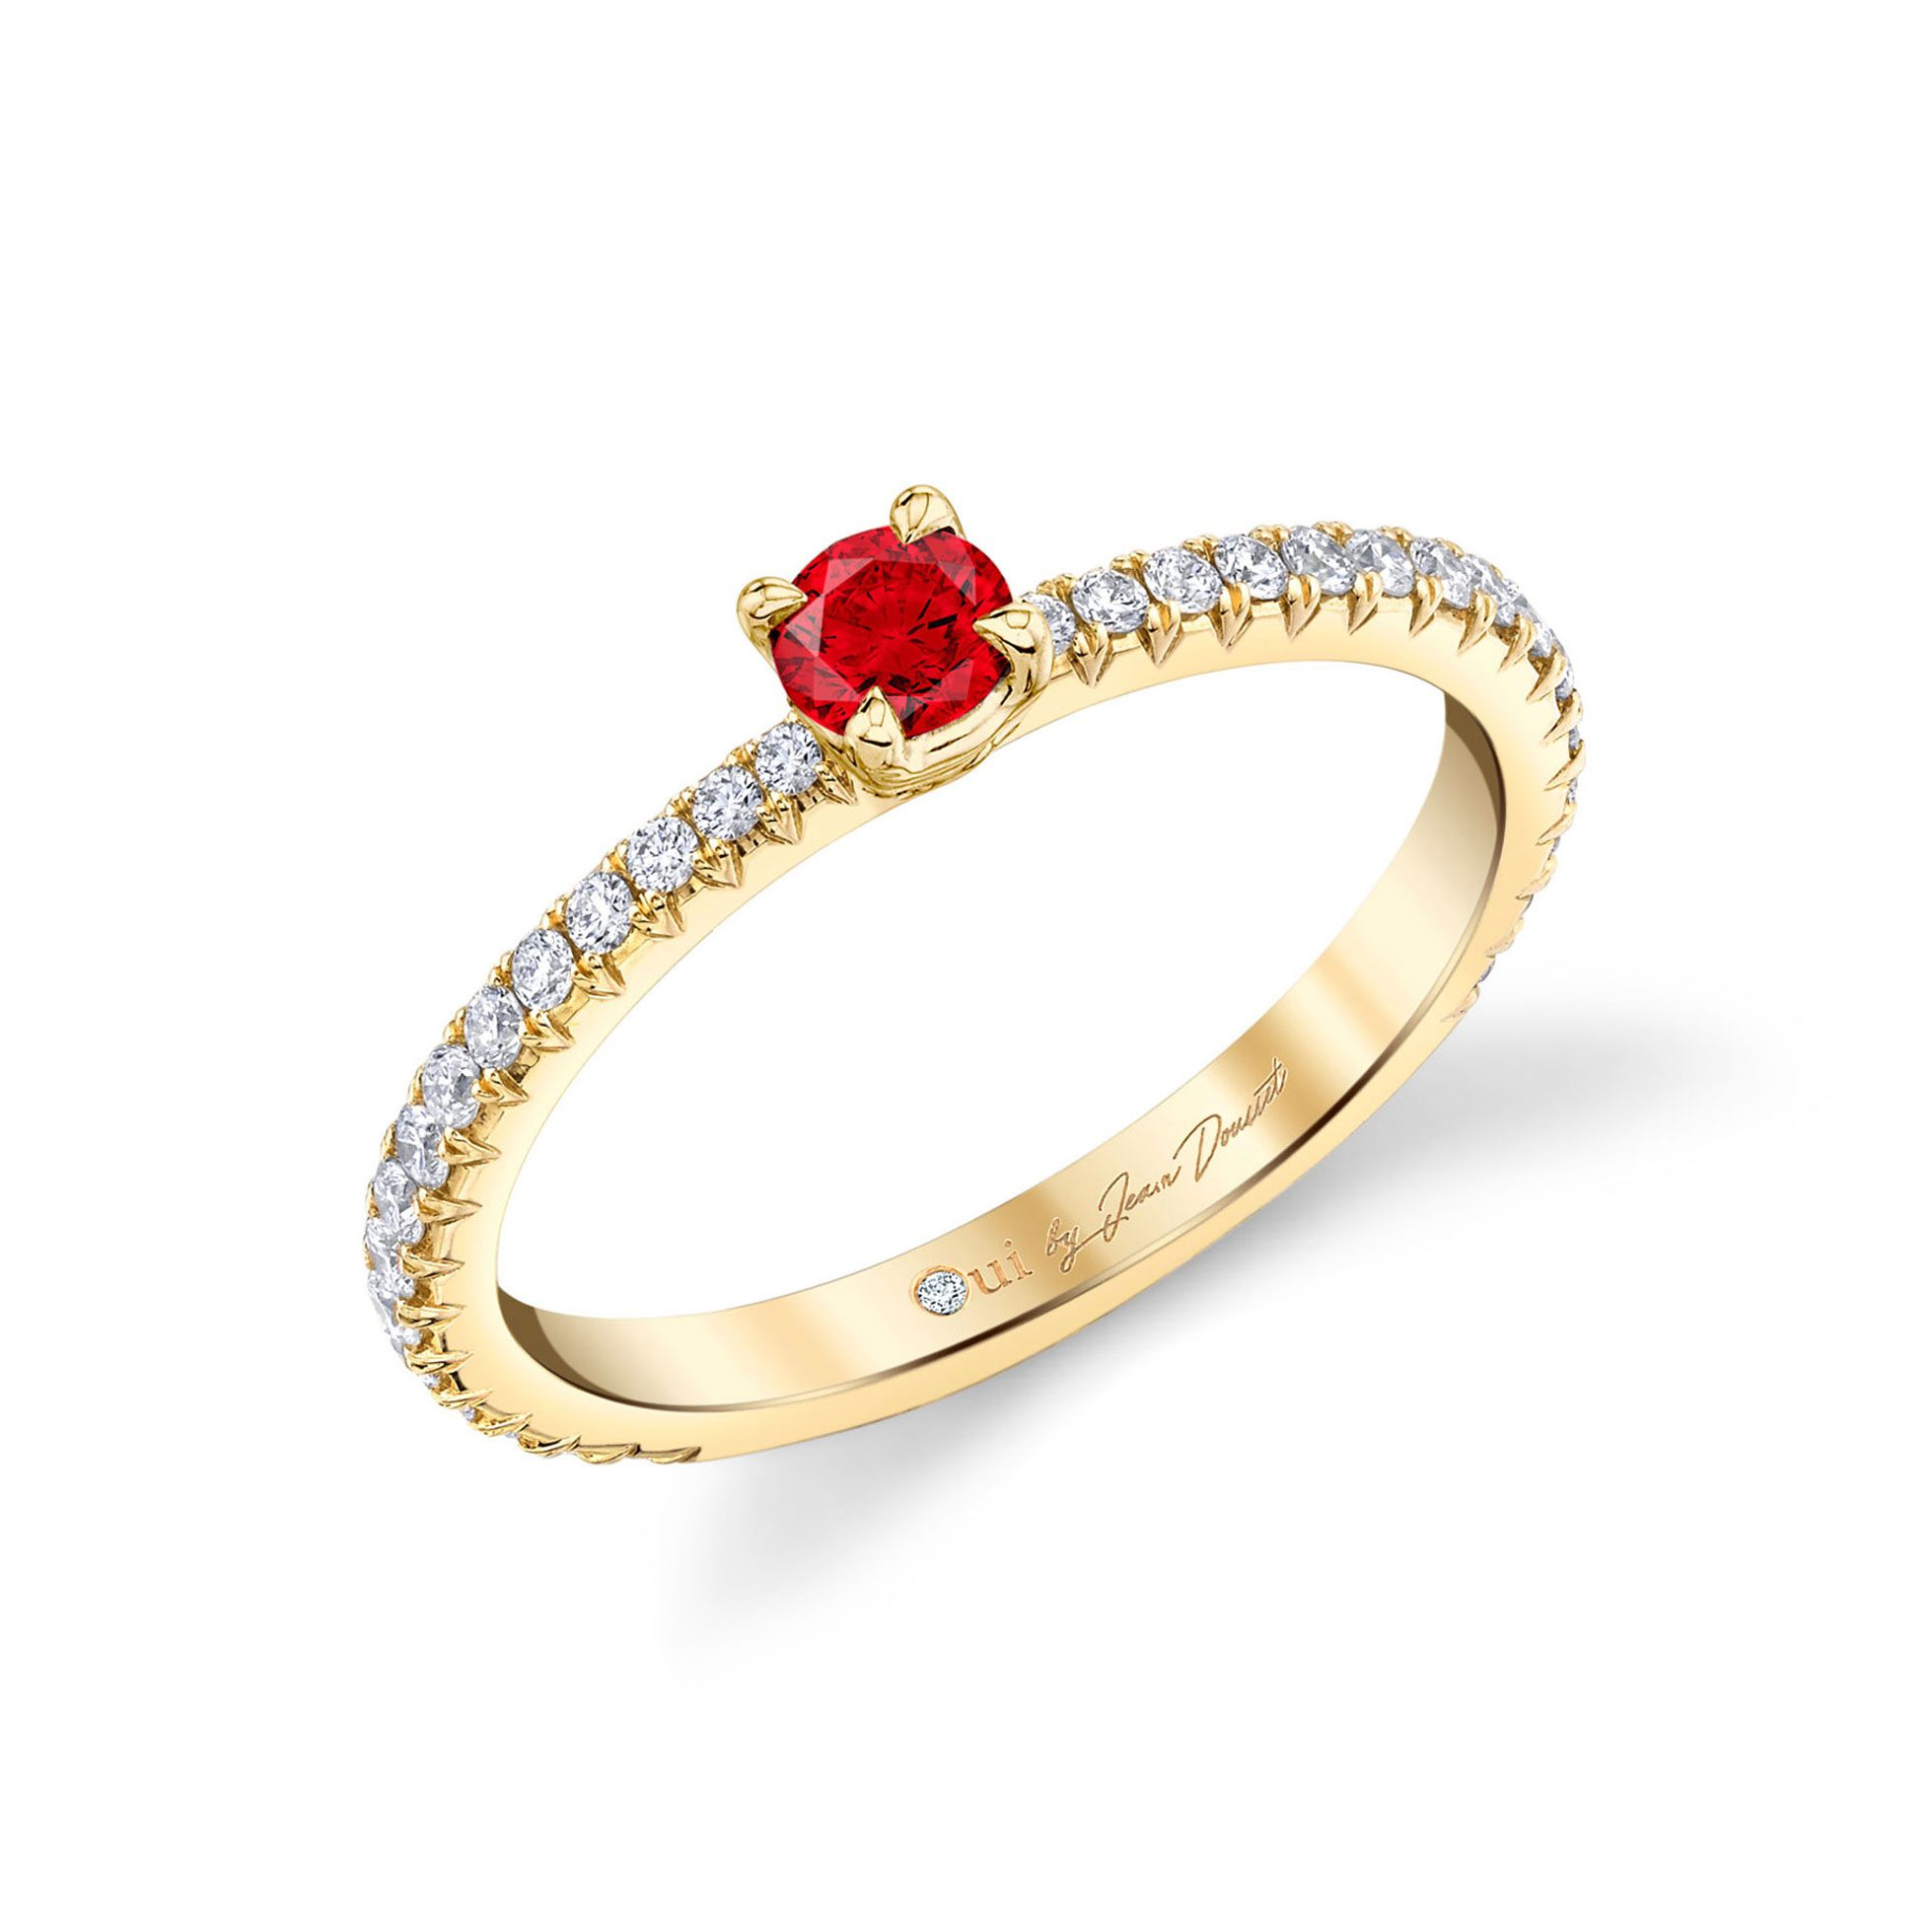 La Petite Round Brilliant Ruby Ring diamond pavé band in 18k Yellow Gold Profile View by Oui by Jean Dousset